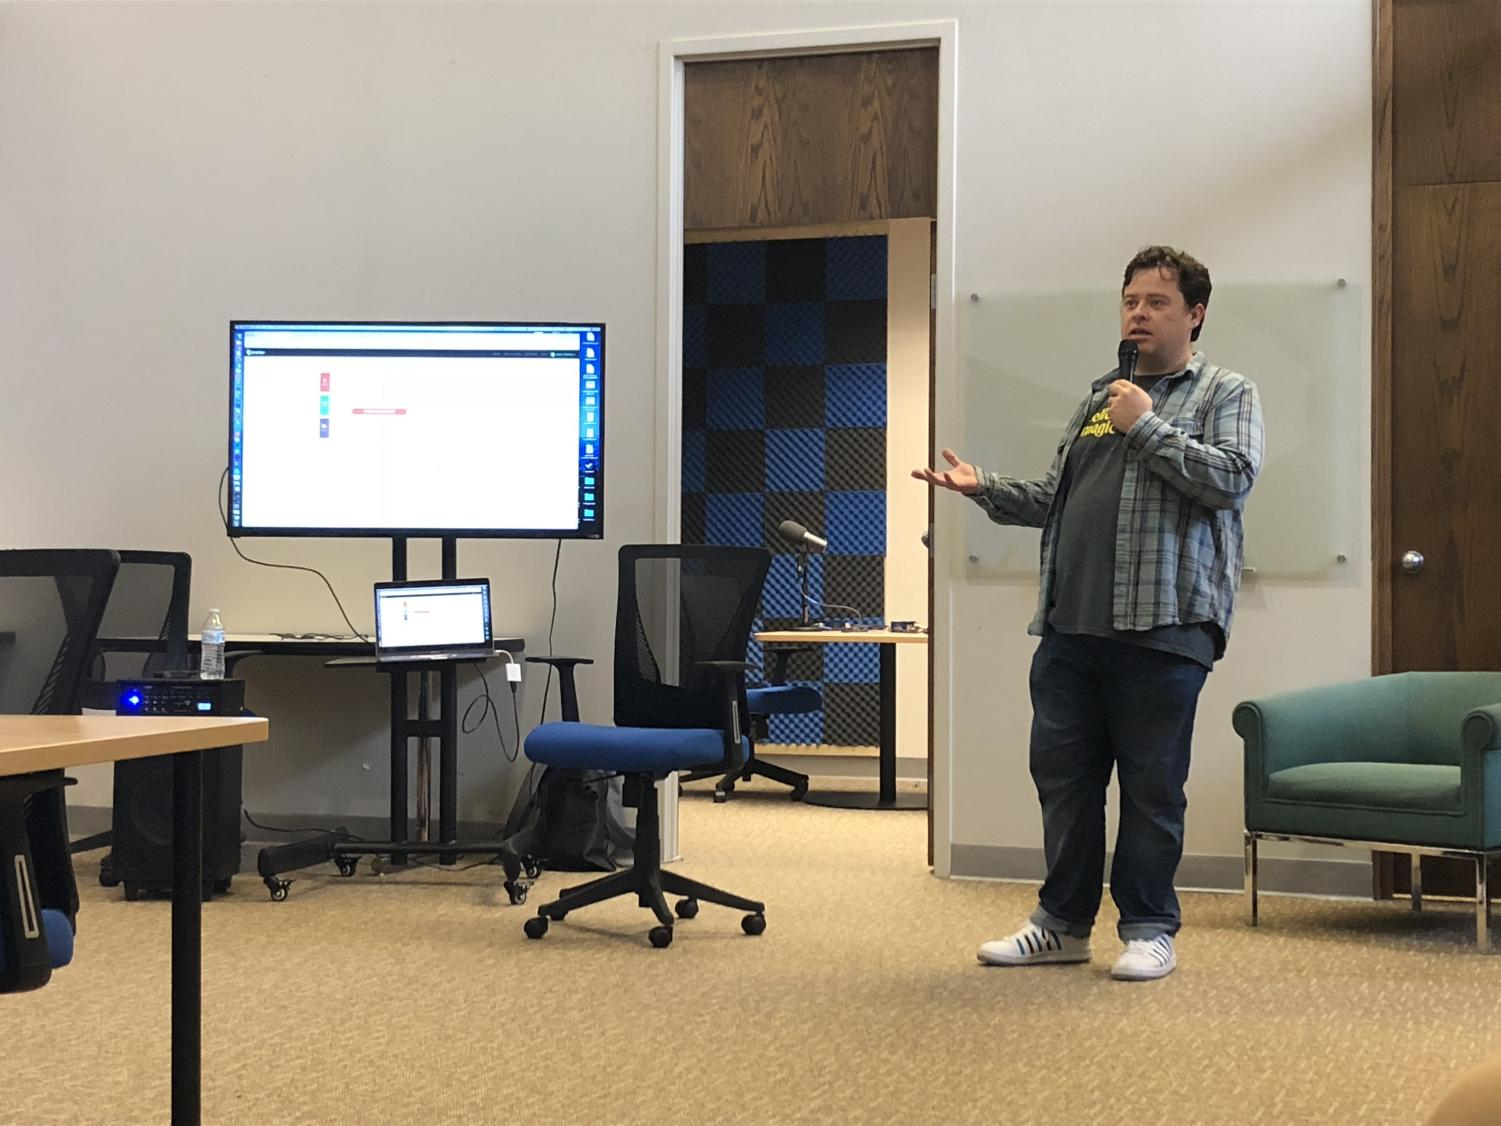 Justin McElroy, Huntington native and Marshall University graduate, teaches fellow Huntingtonians the art of podcasting in the recording studio at CoWorks.